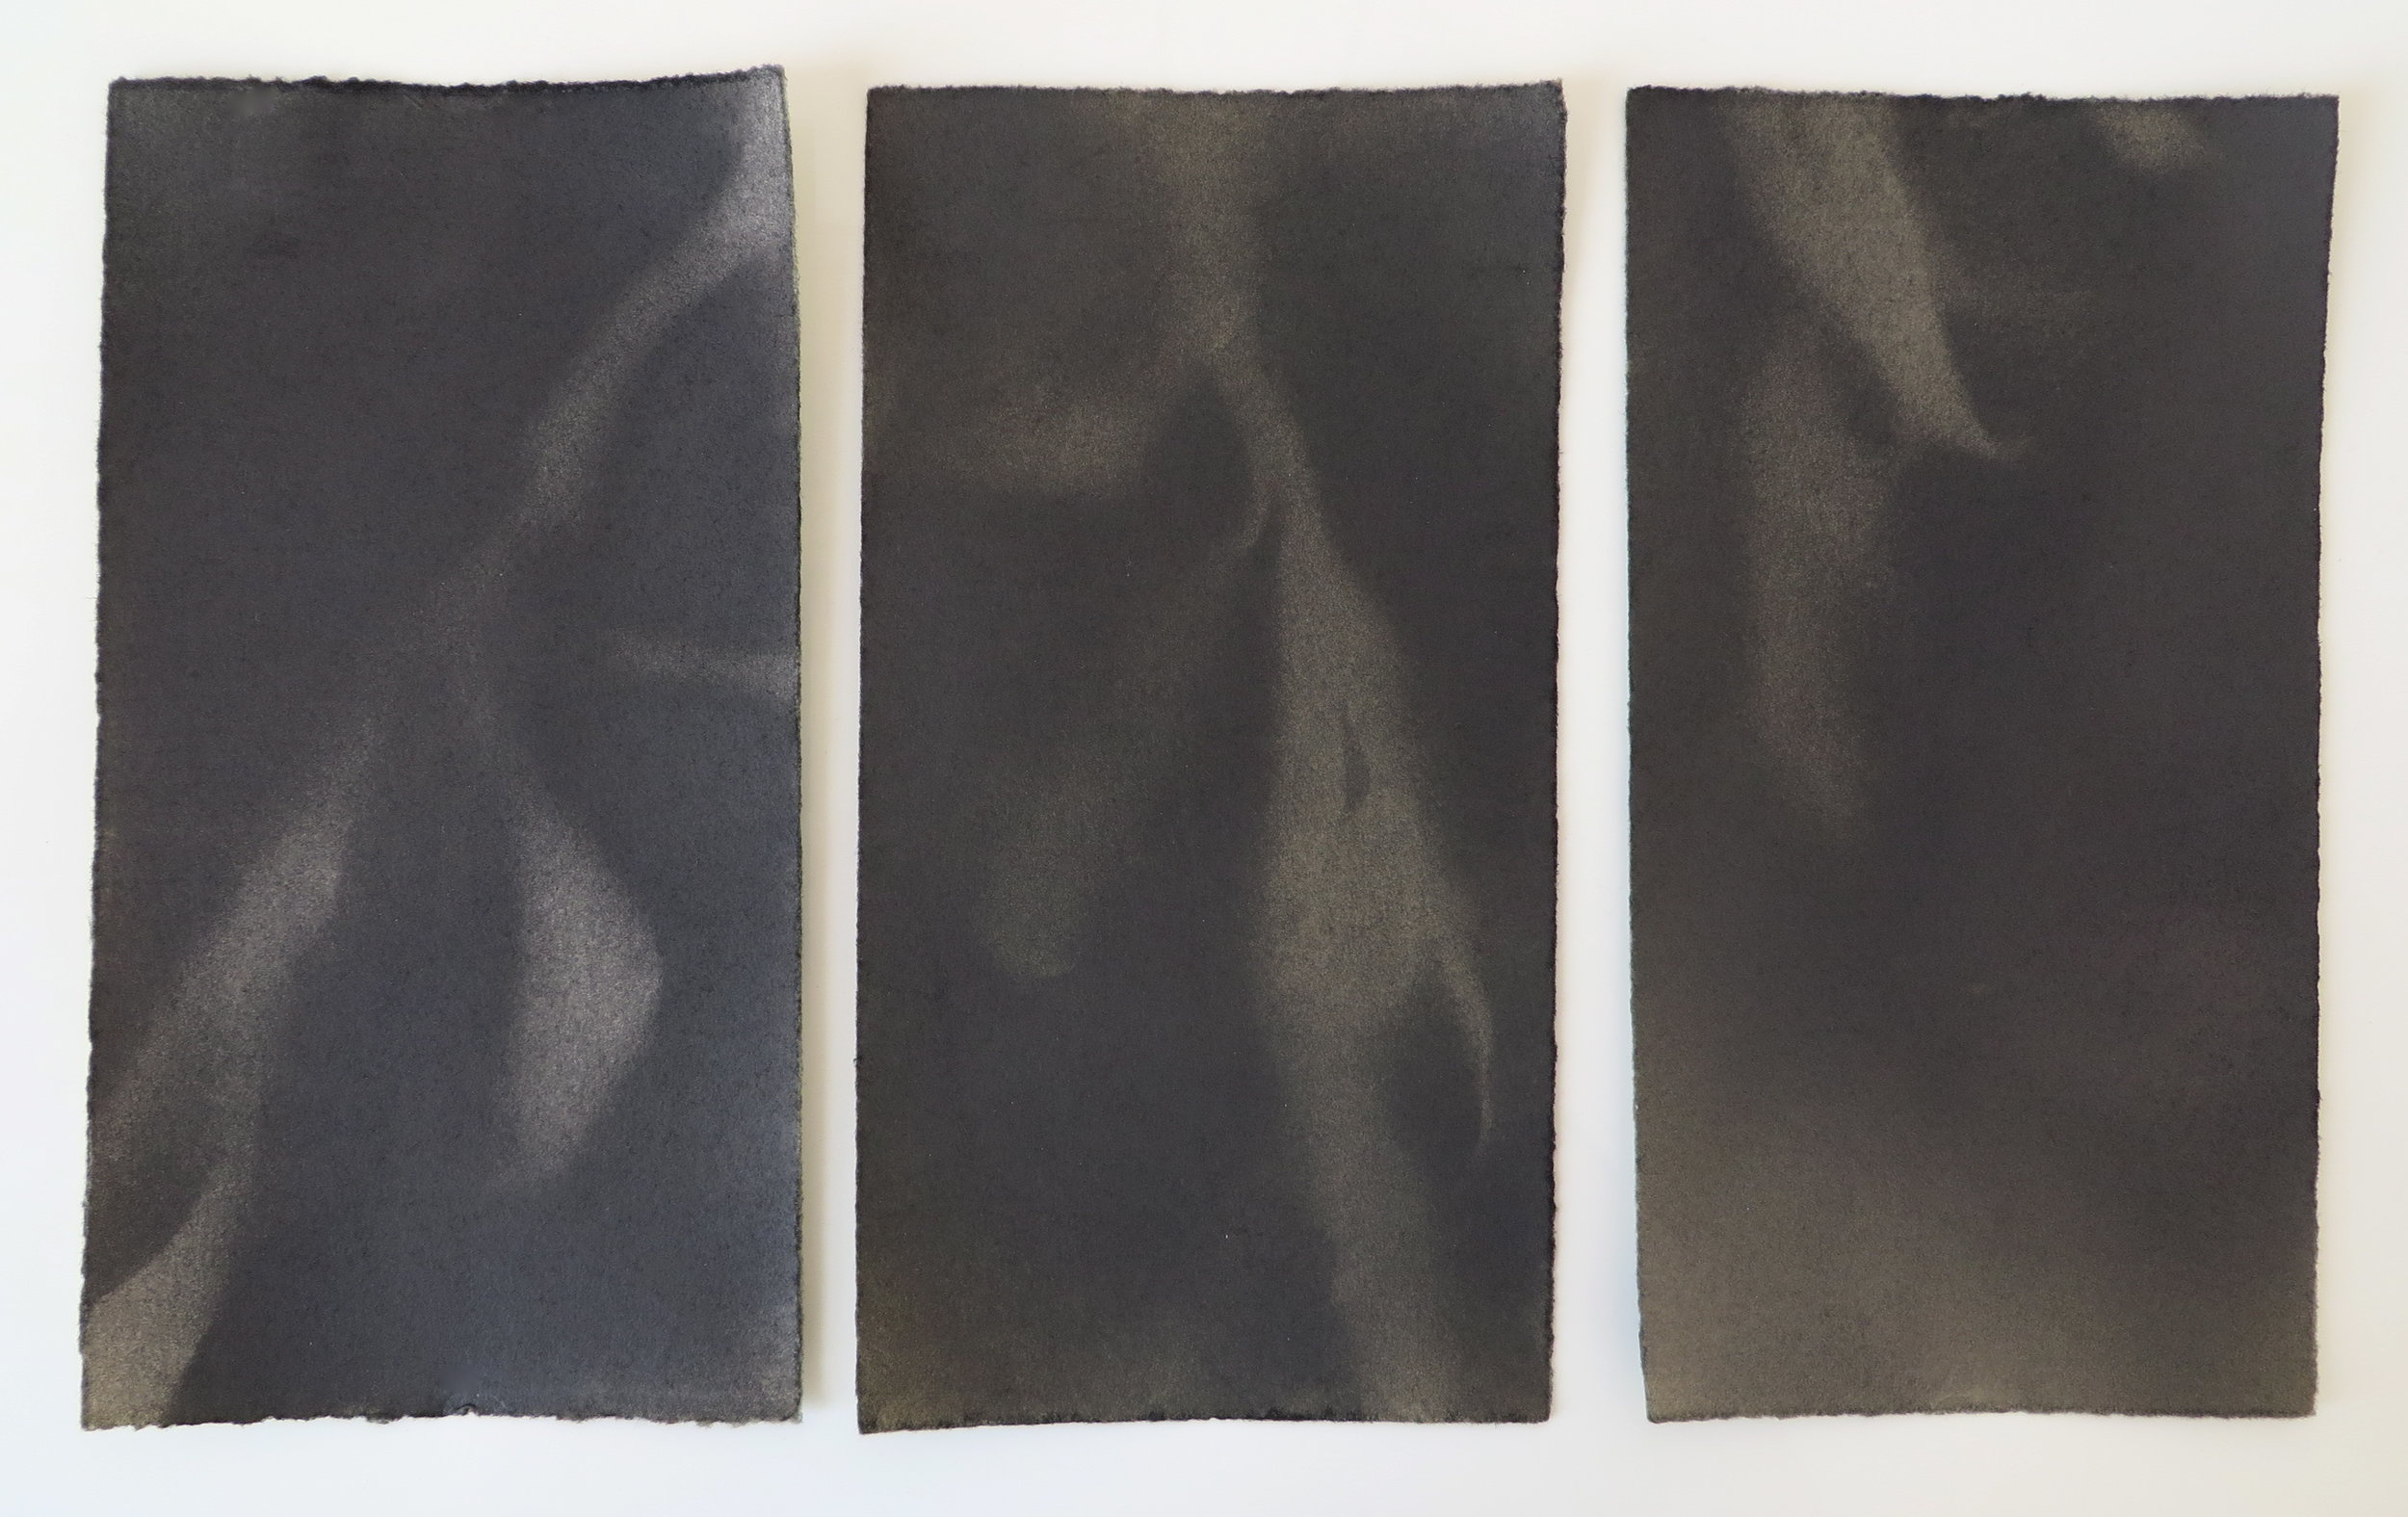 Wind  Triptych. Graphite, each panel 8 x 4.25 inches, 2016.